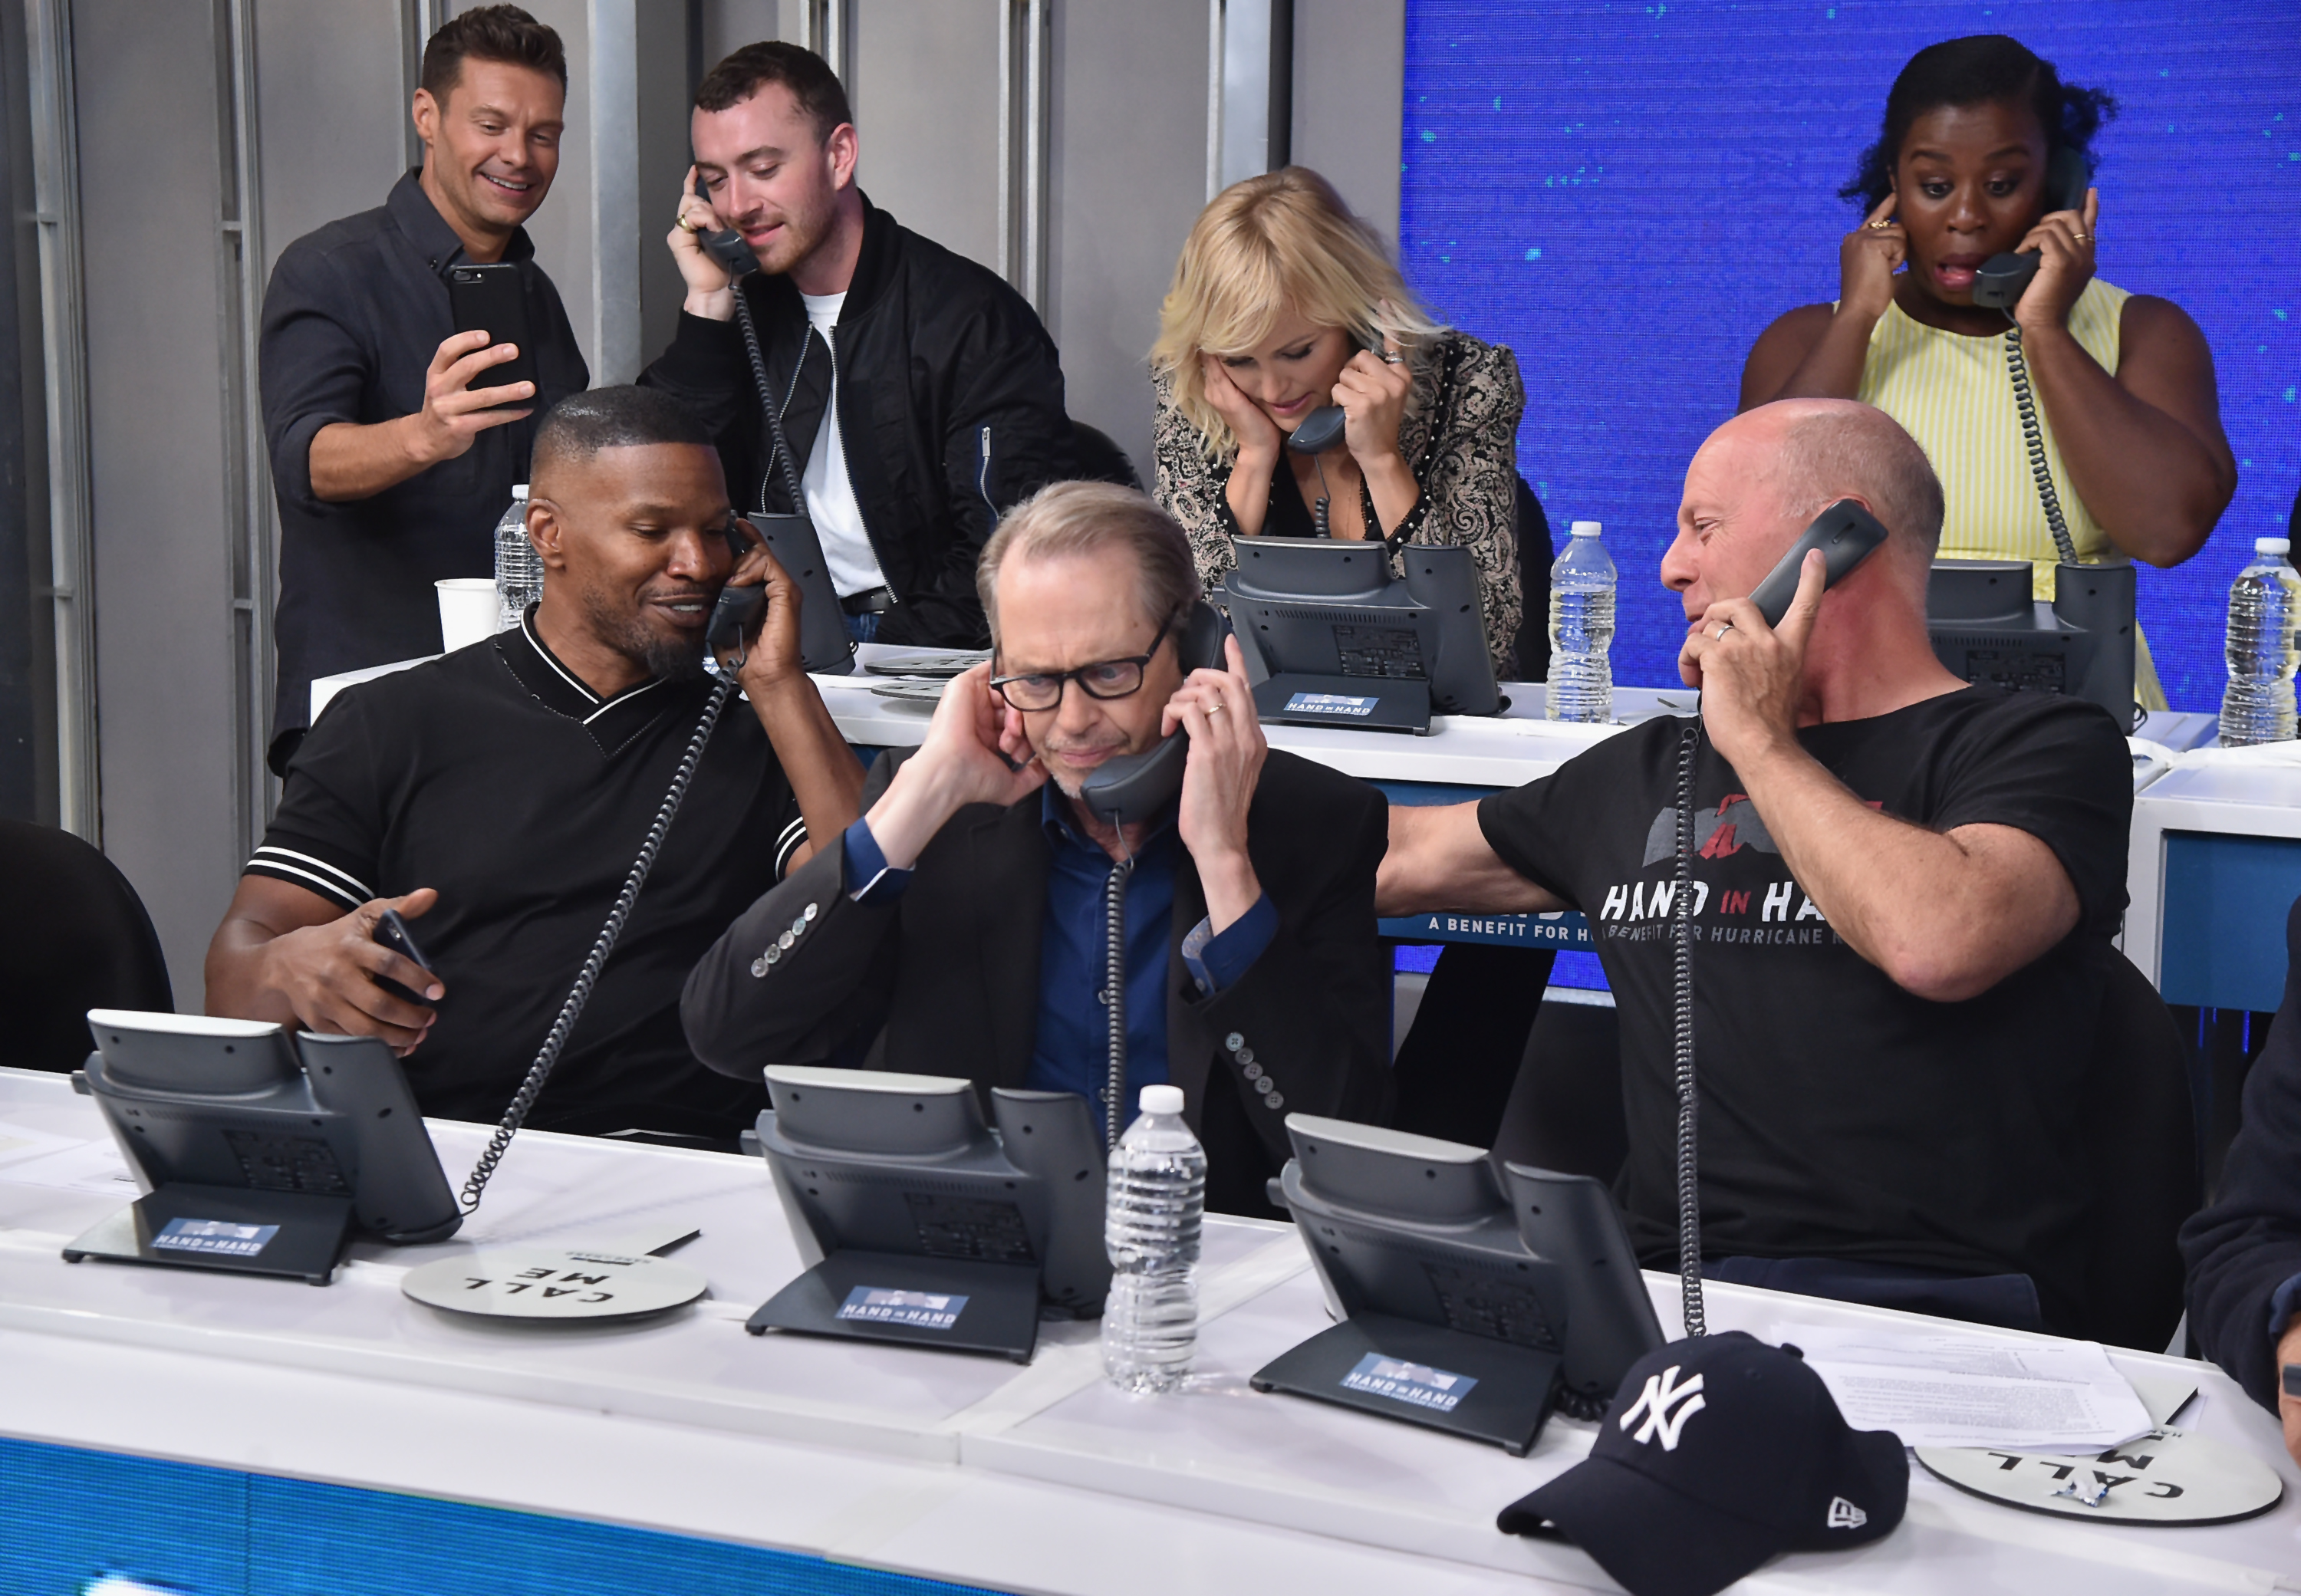 <div class='meta'><div class='origin-logo' data-origin='none'></div><span class='caption-text' data-credit='Theo Wargo/Hand in Hand/Getty Images'>Sam Smith, Jamie Foxx, Steve Buscemi, and Bruce Willis caption at ABC News' Good Morning America Times Square Studio on September 12, 2017 in New York City.</span></div>